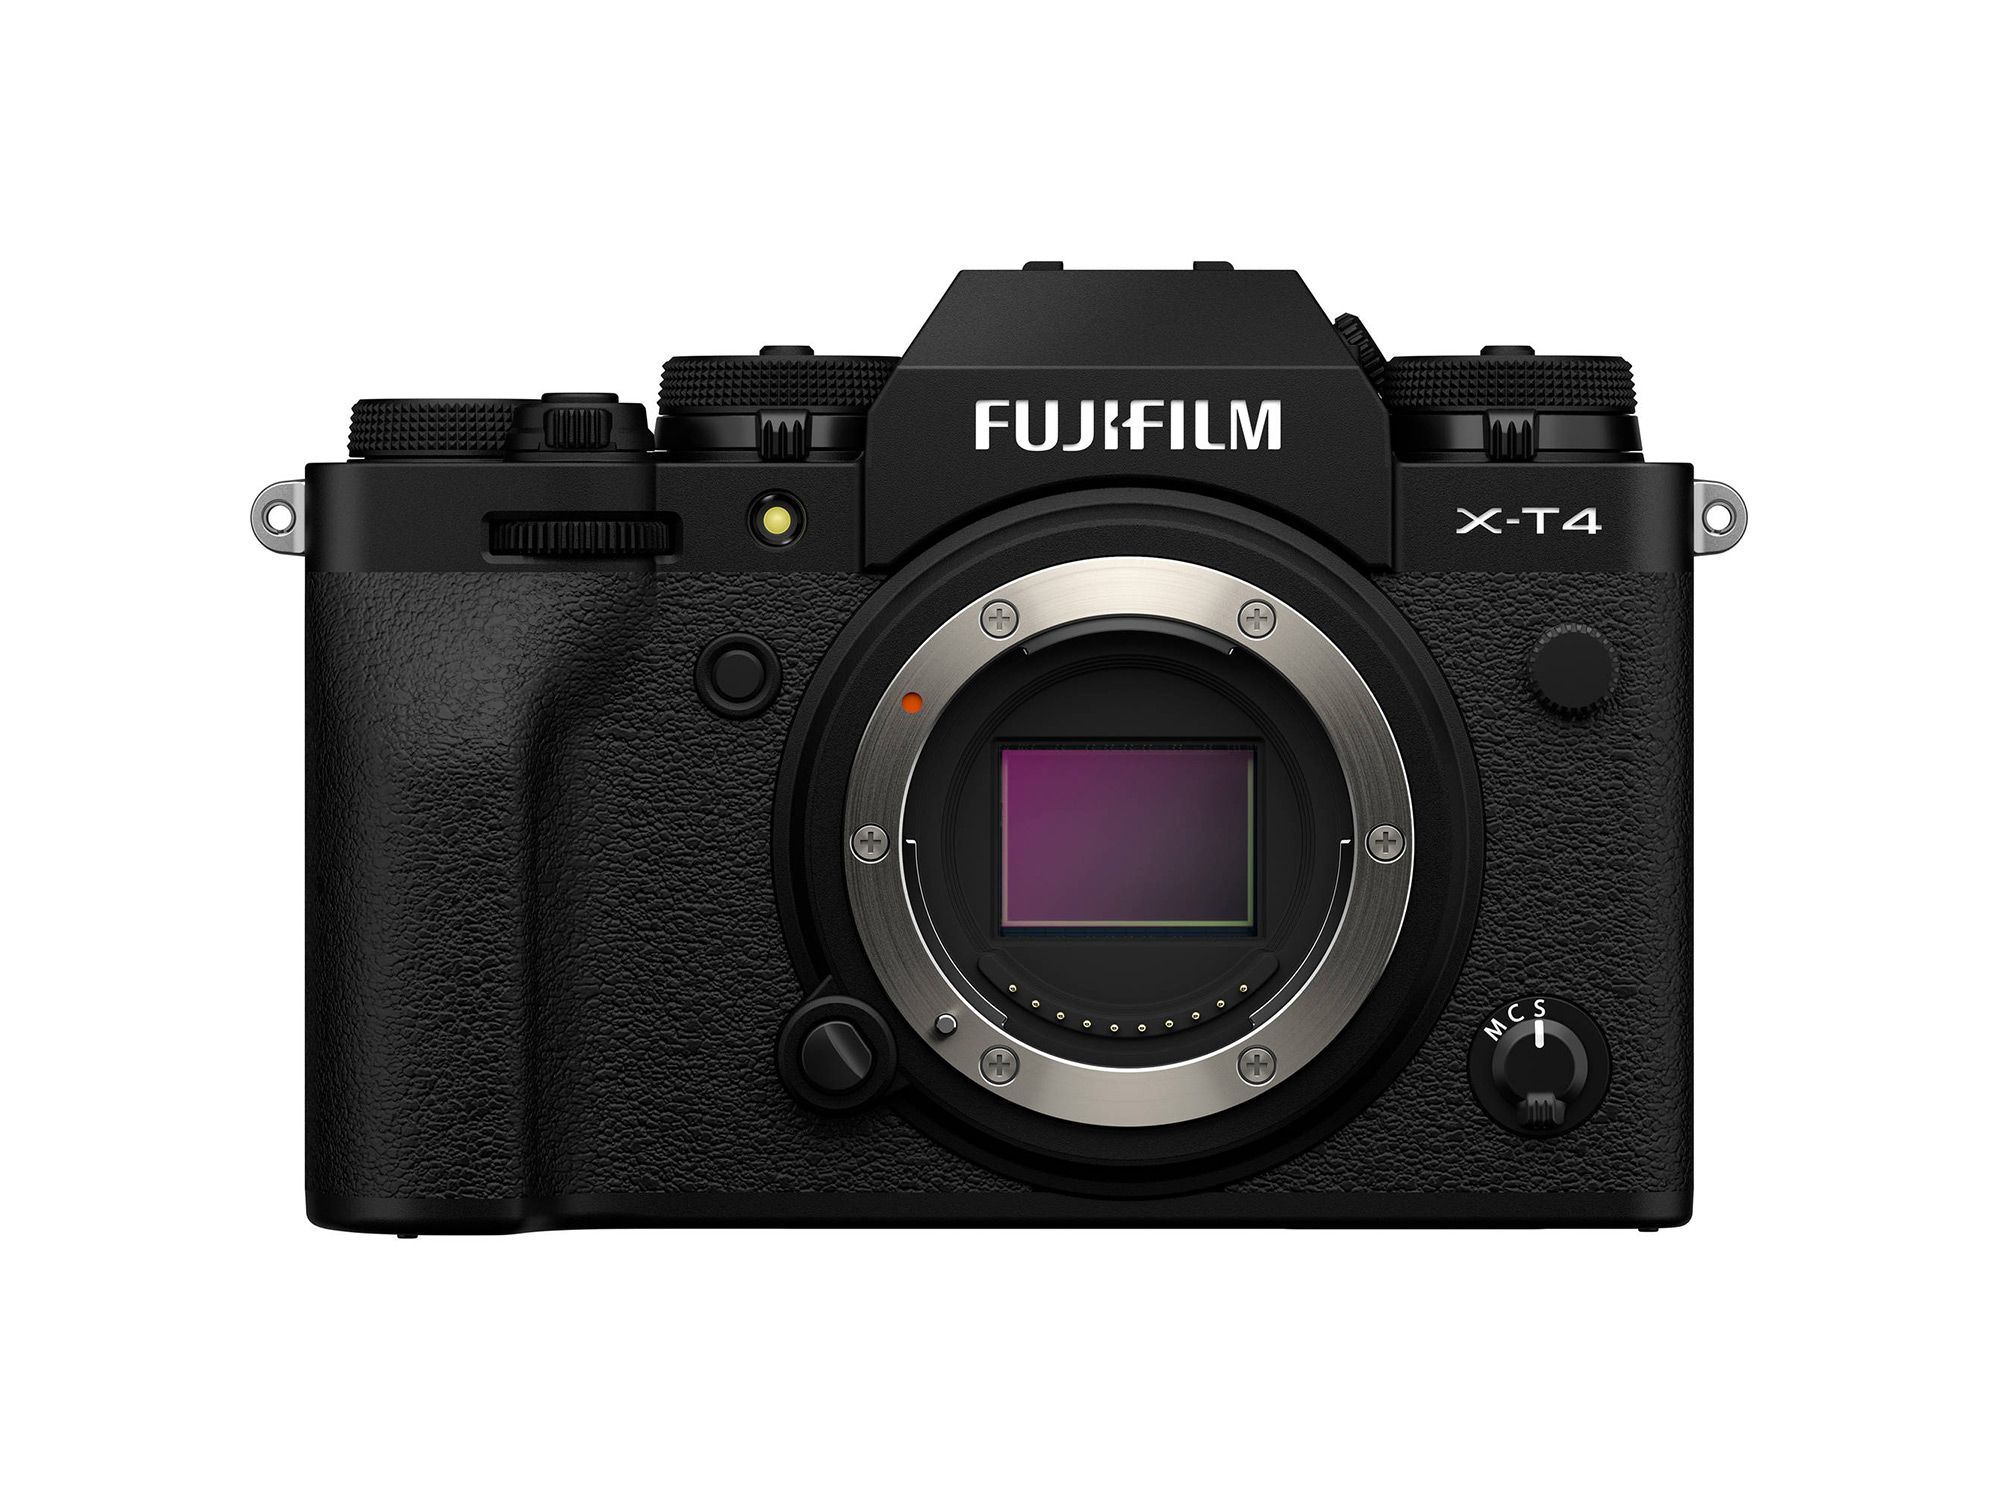 FujiFilm X-T4 Mirrorless Digital Camera (Body Only, Black) PRE-ORDER NOW